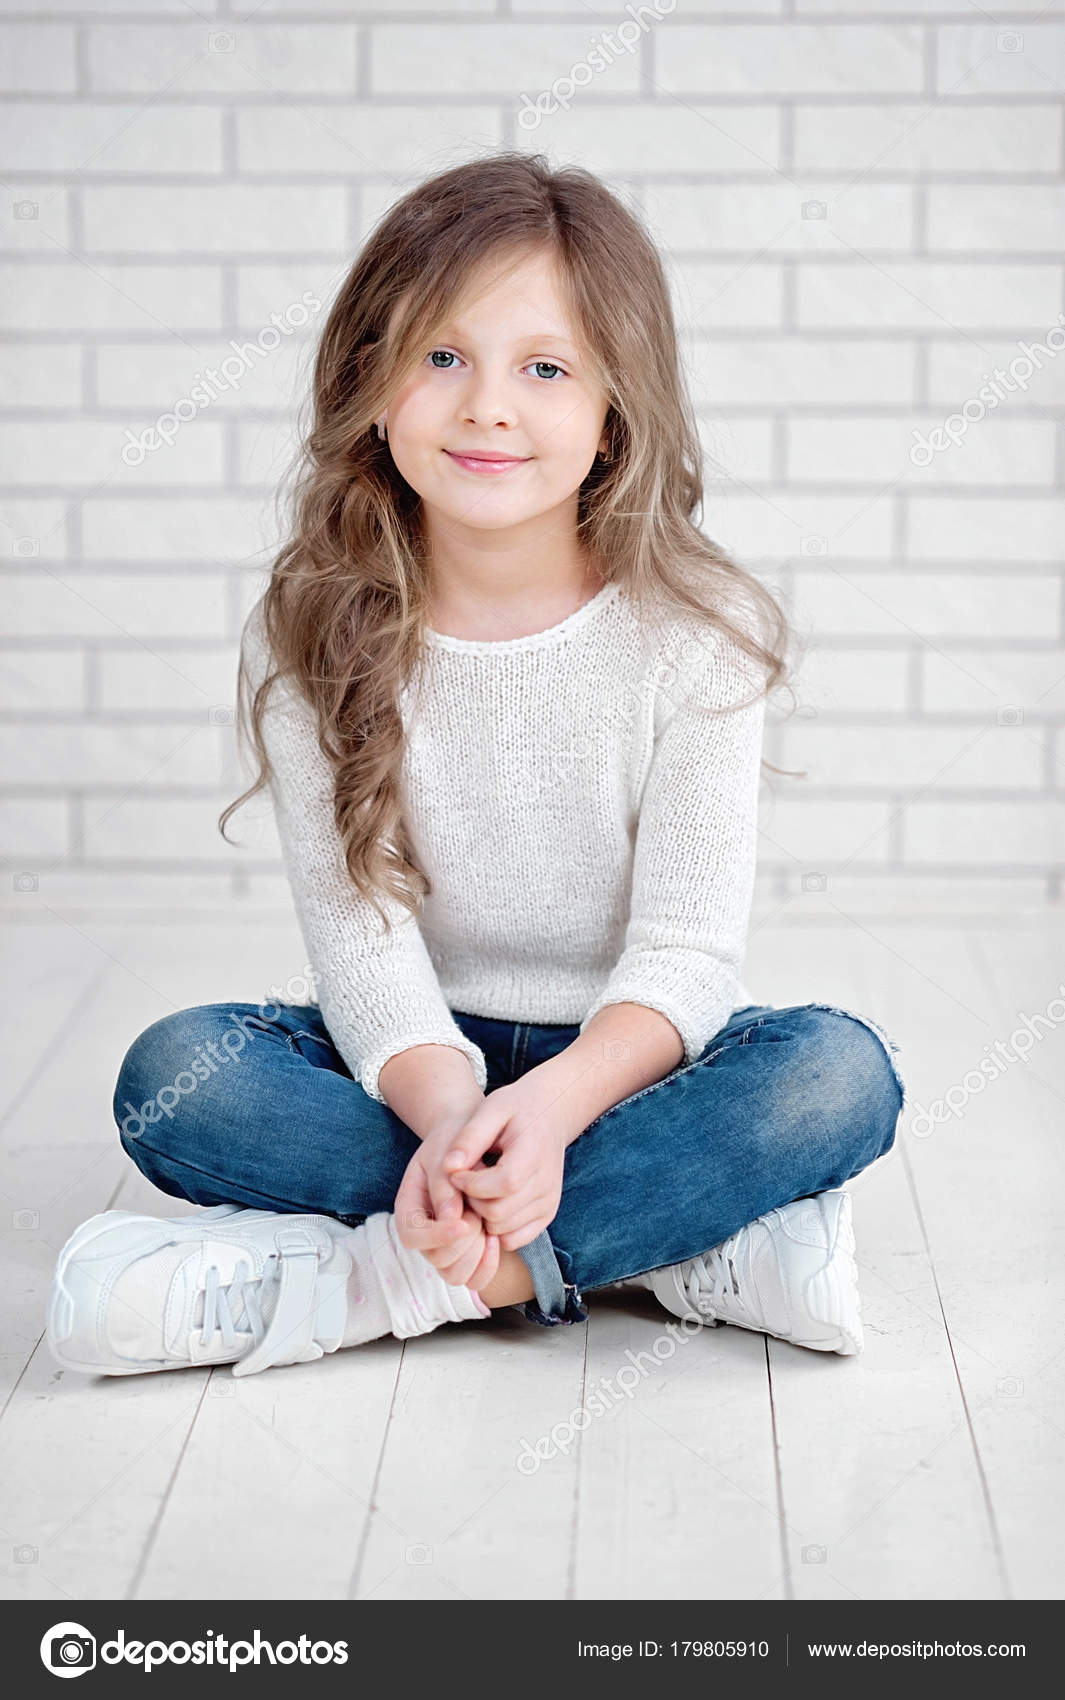 Portrait Of Cute Little 7 Years Old Girl Smiling And